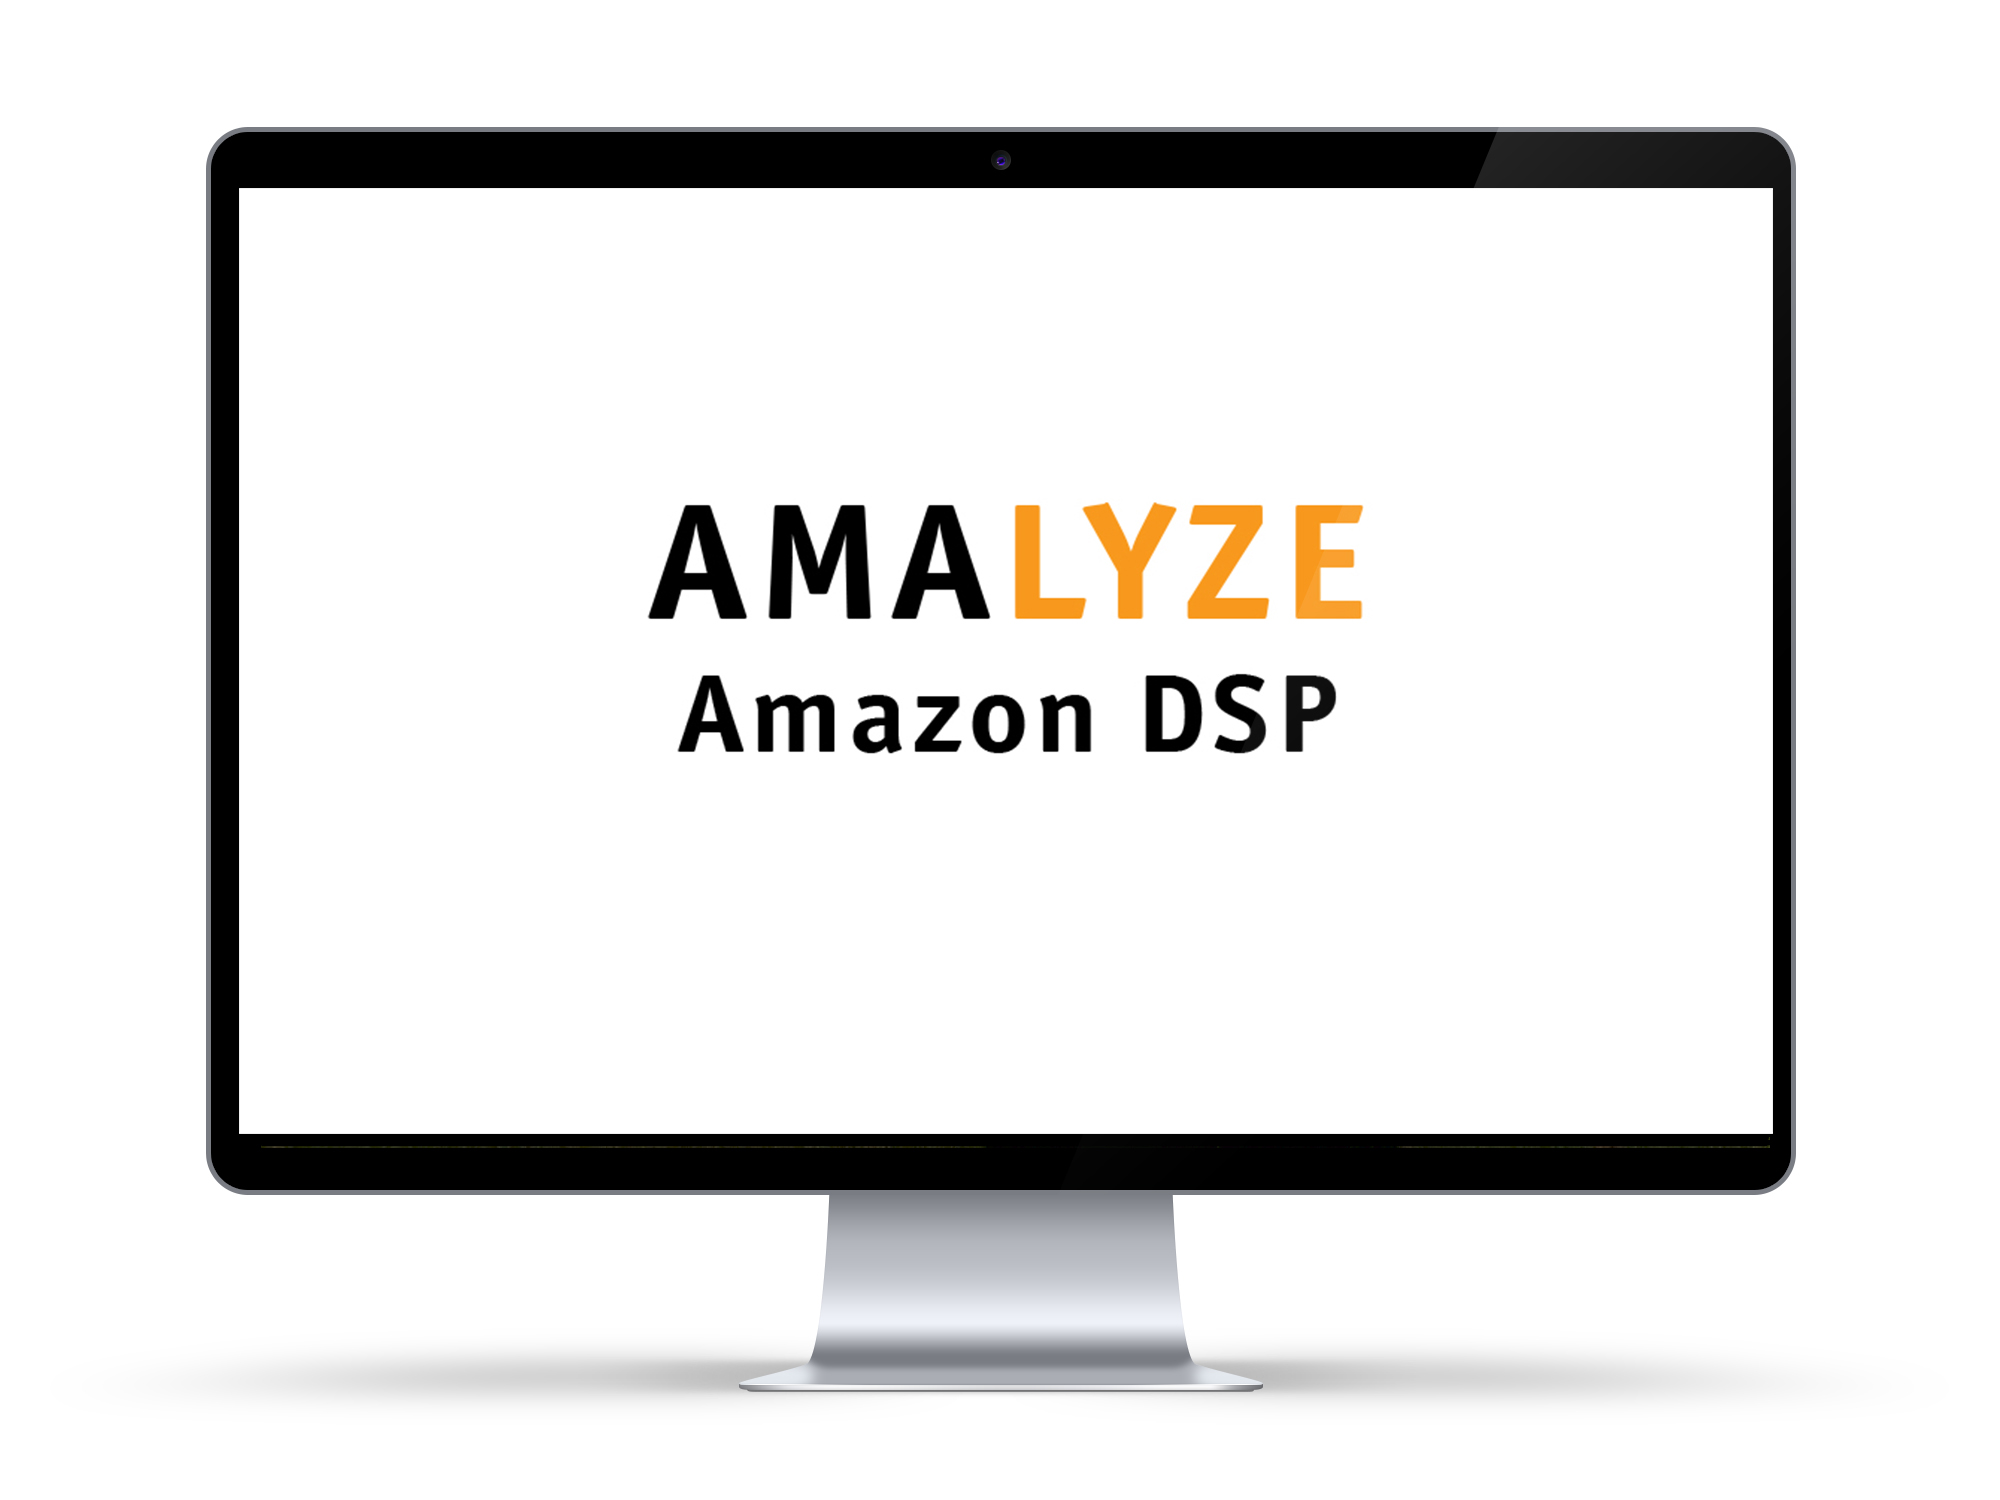 AMALYZE Amazon DSP